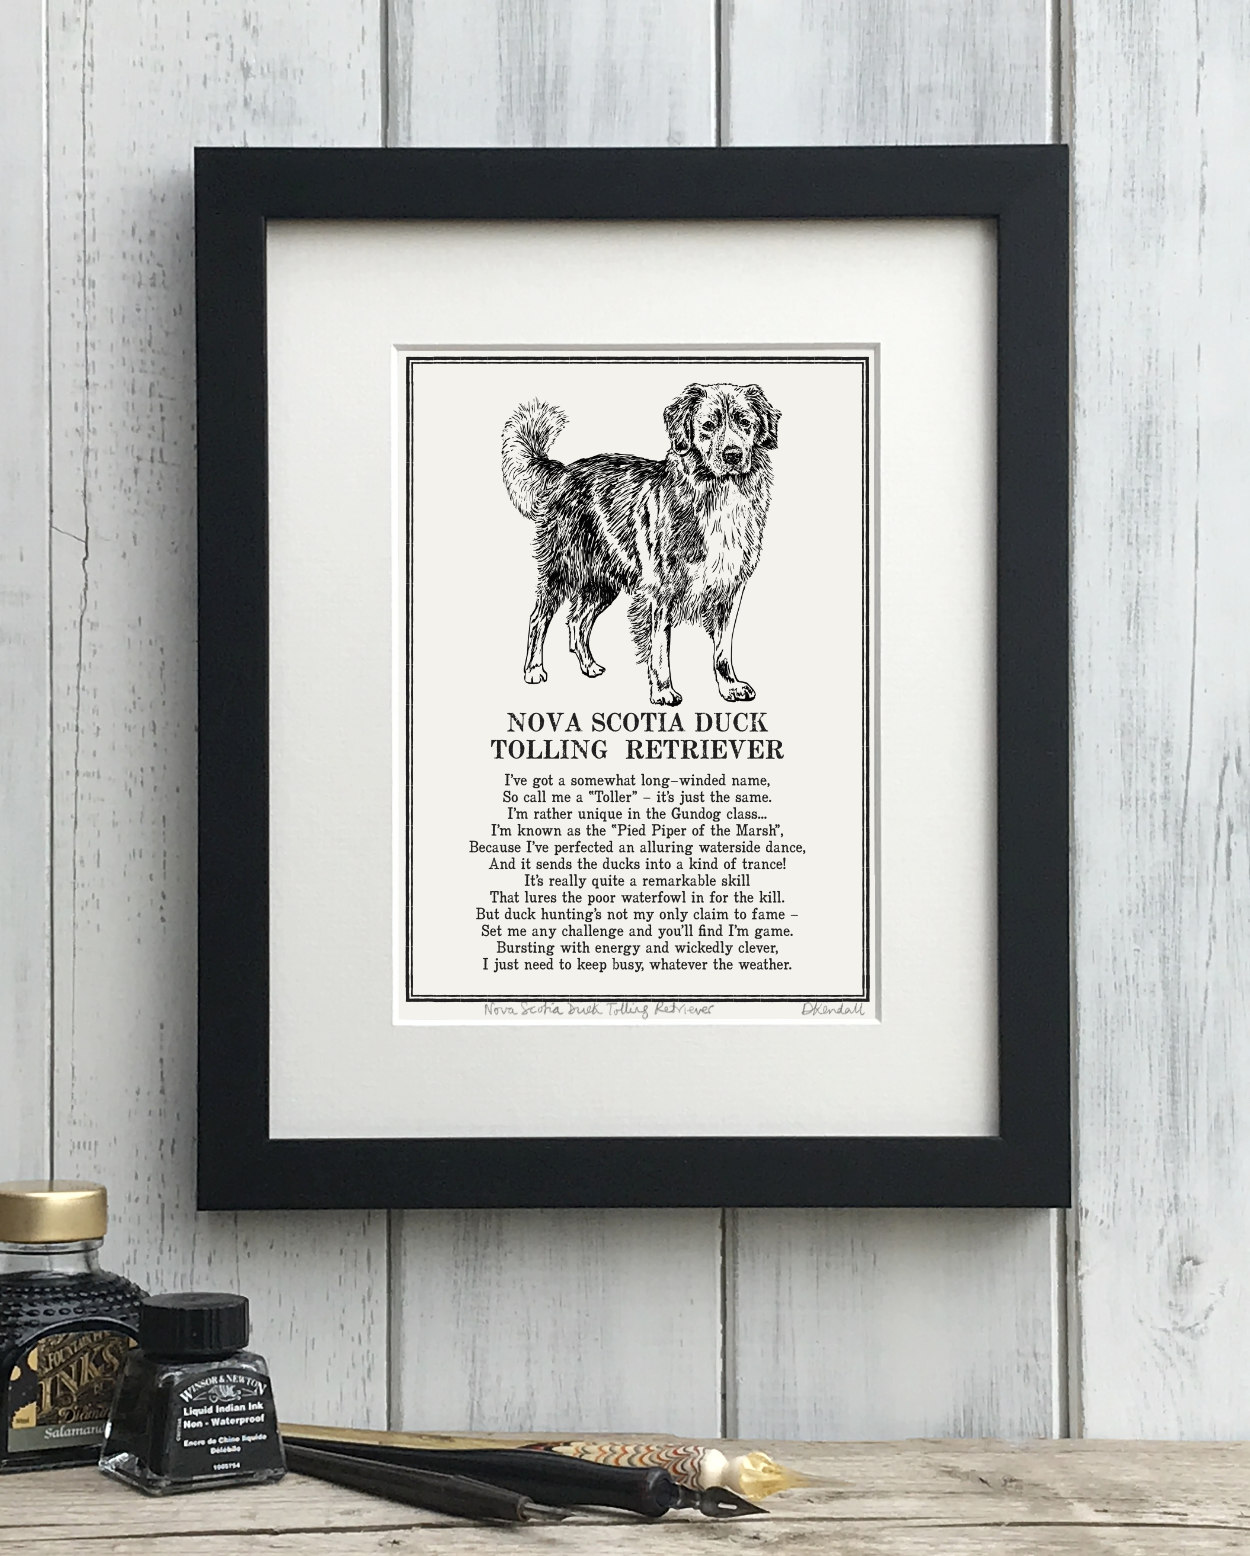 Nova Scotia Duck Tolling Retriever Doggerel Print